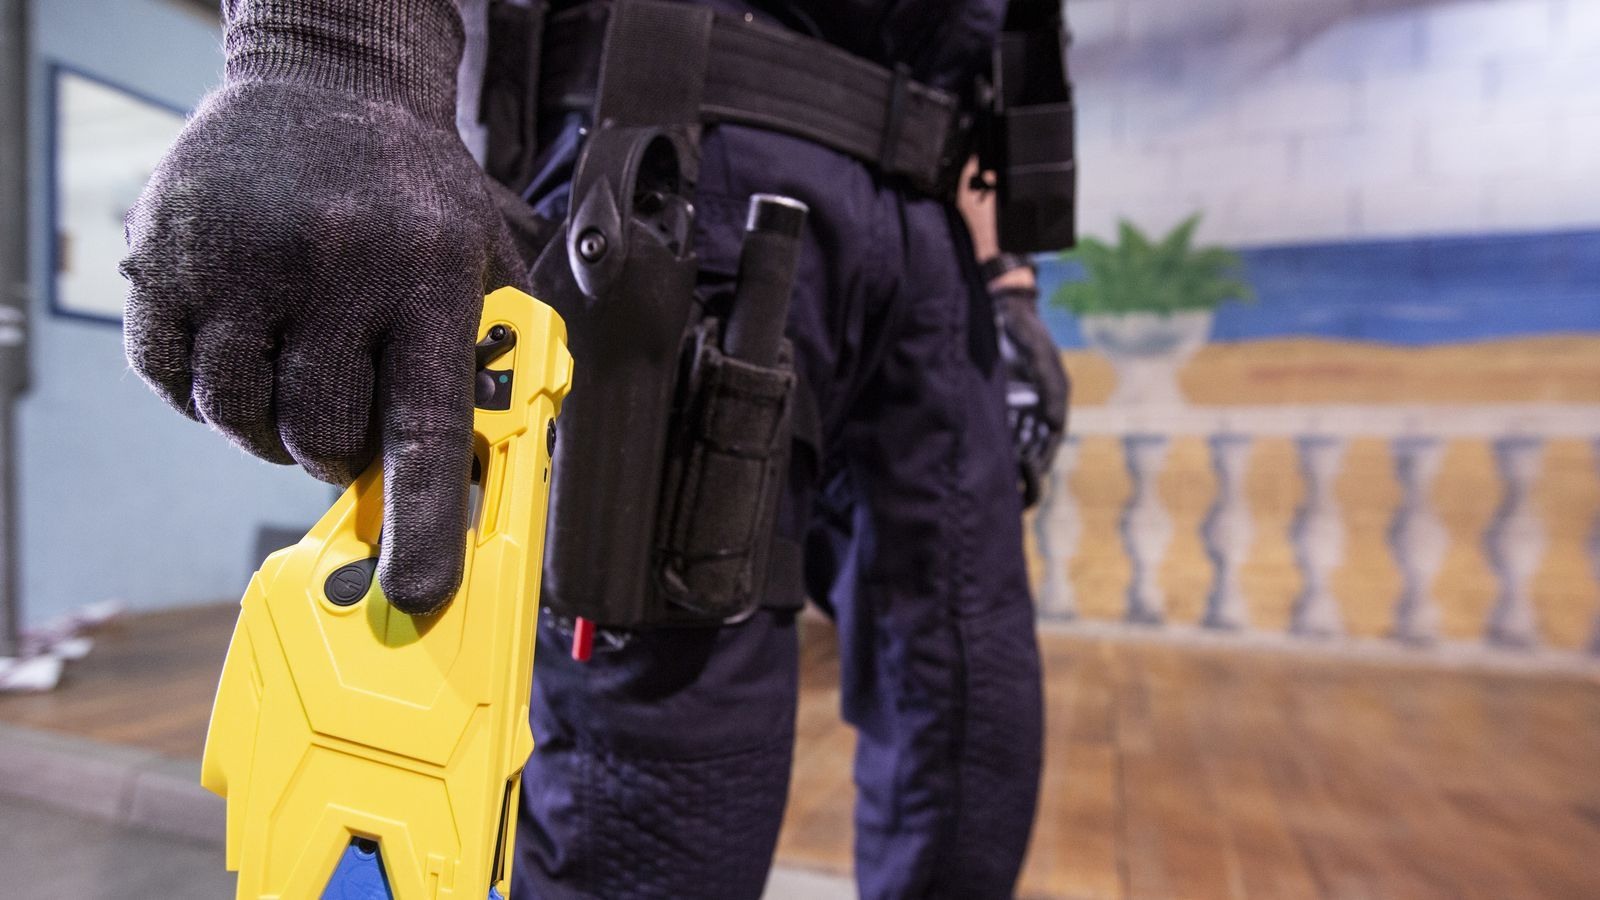 Police use Taser against woman outside health centre in Sabadell